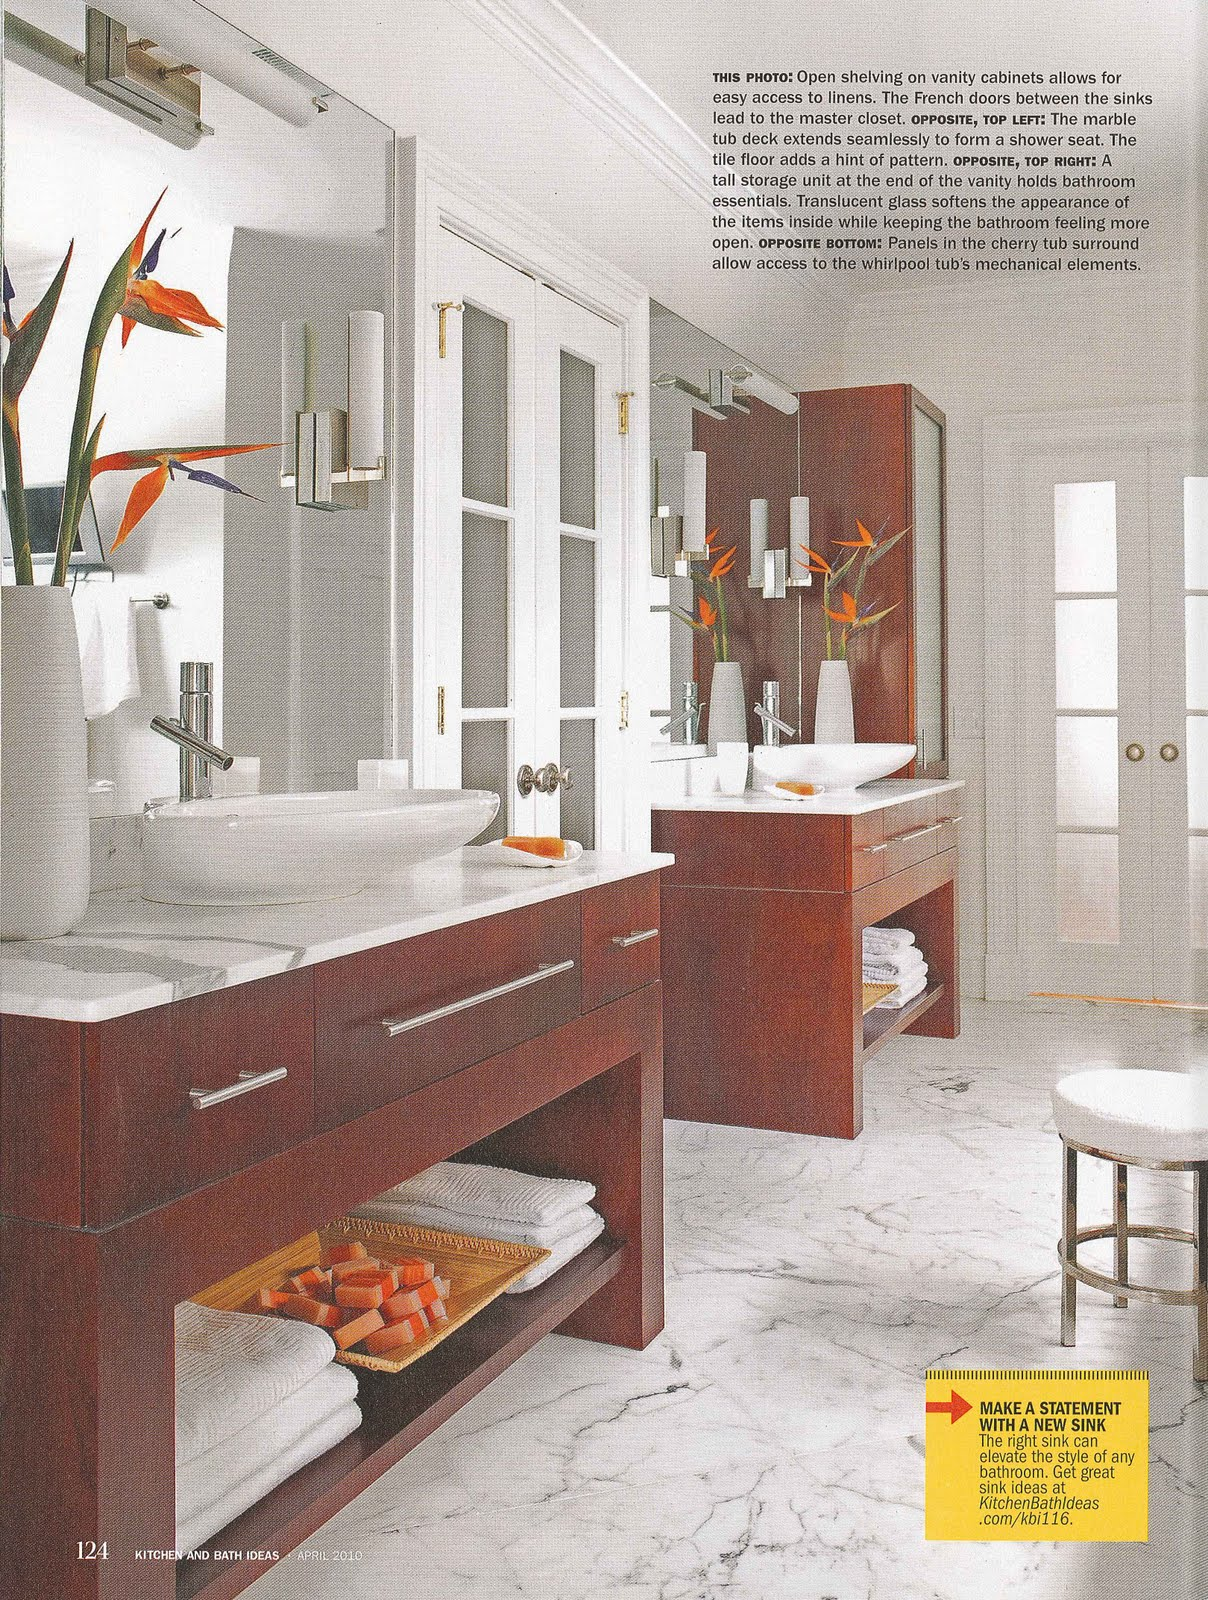 Better Homes and Gardens: Kitchen and Bath Ideas